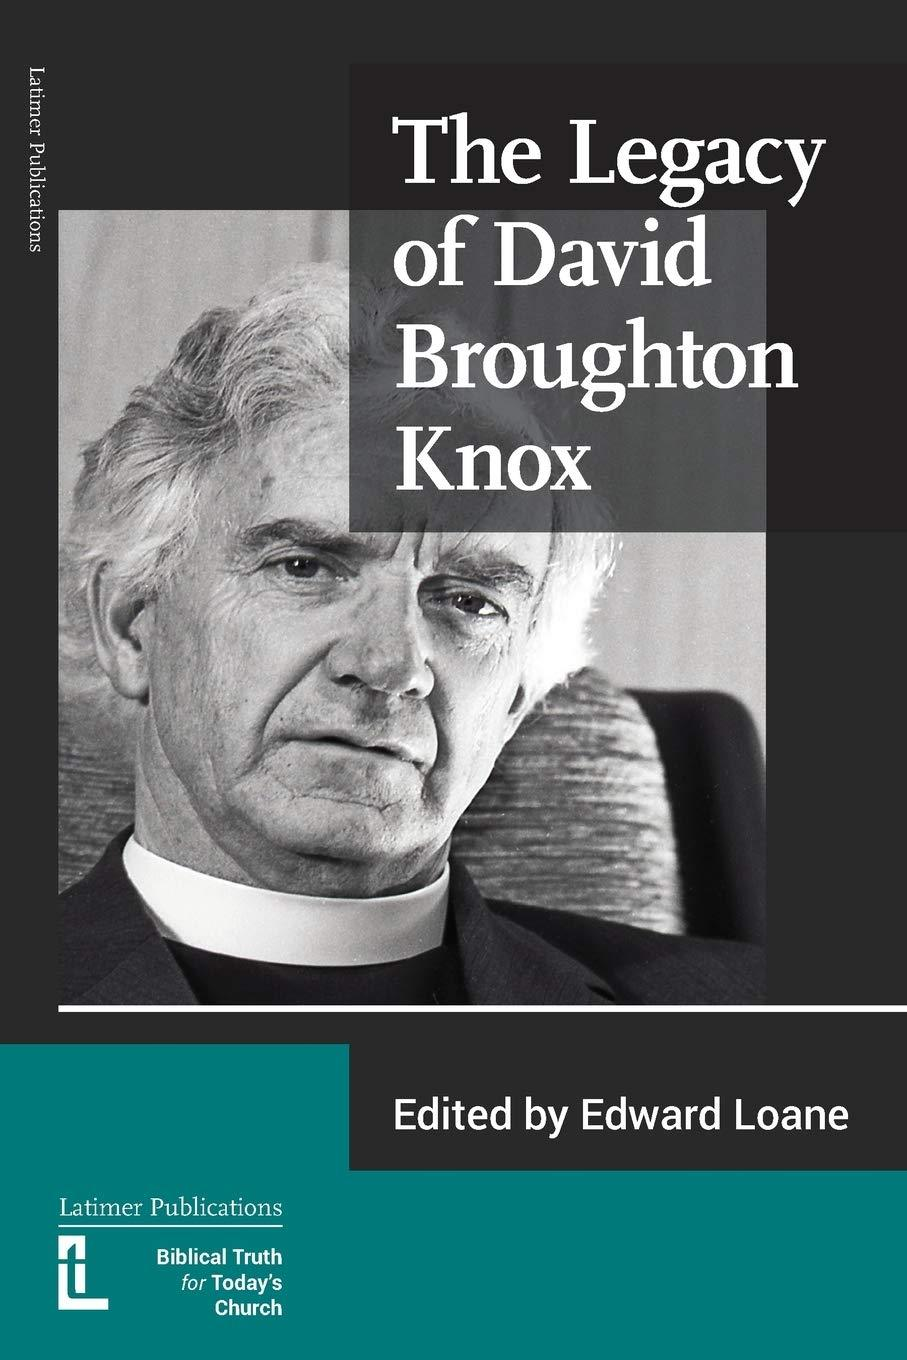 The Legacy of Broughton Knox by Edward Loane, ISBN: 9781906327507